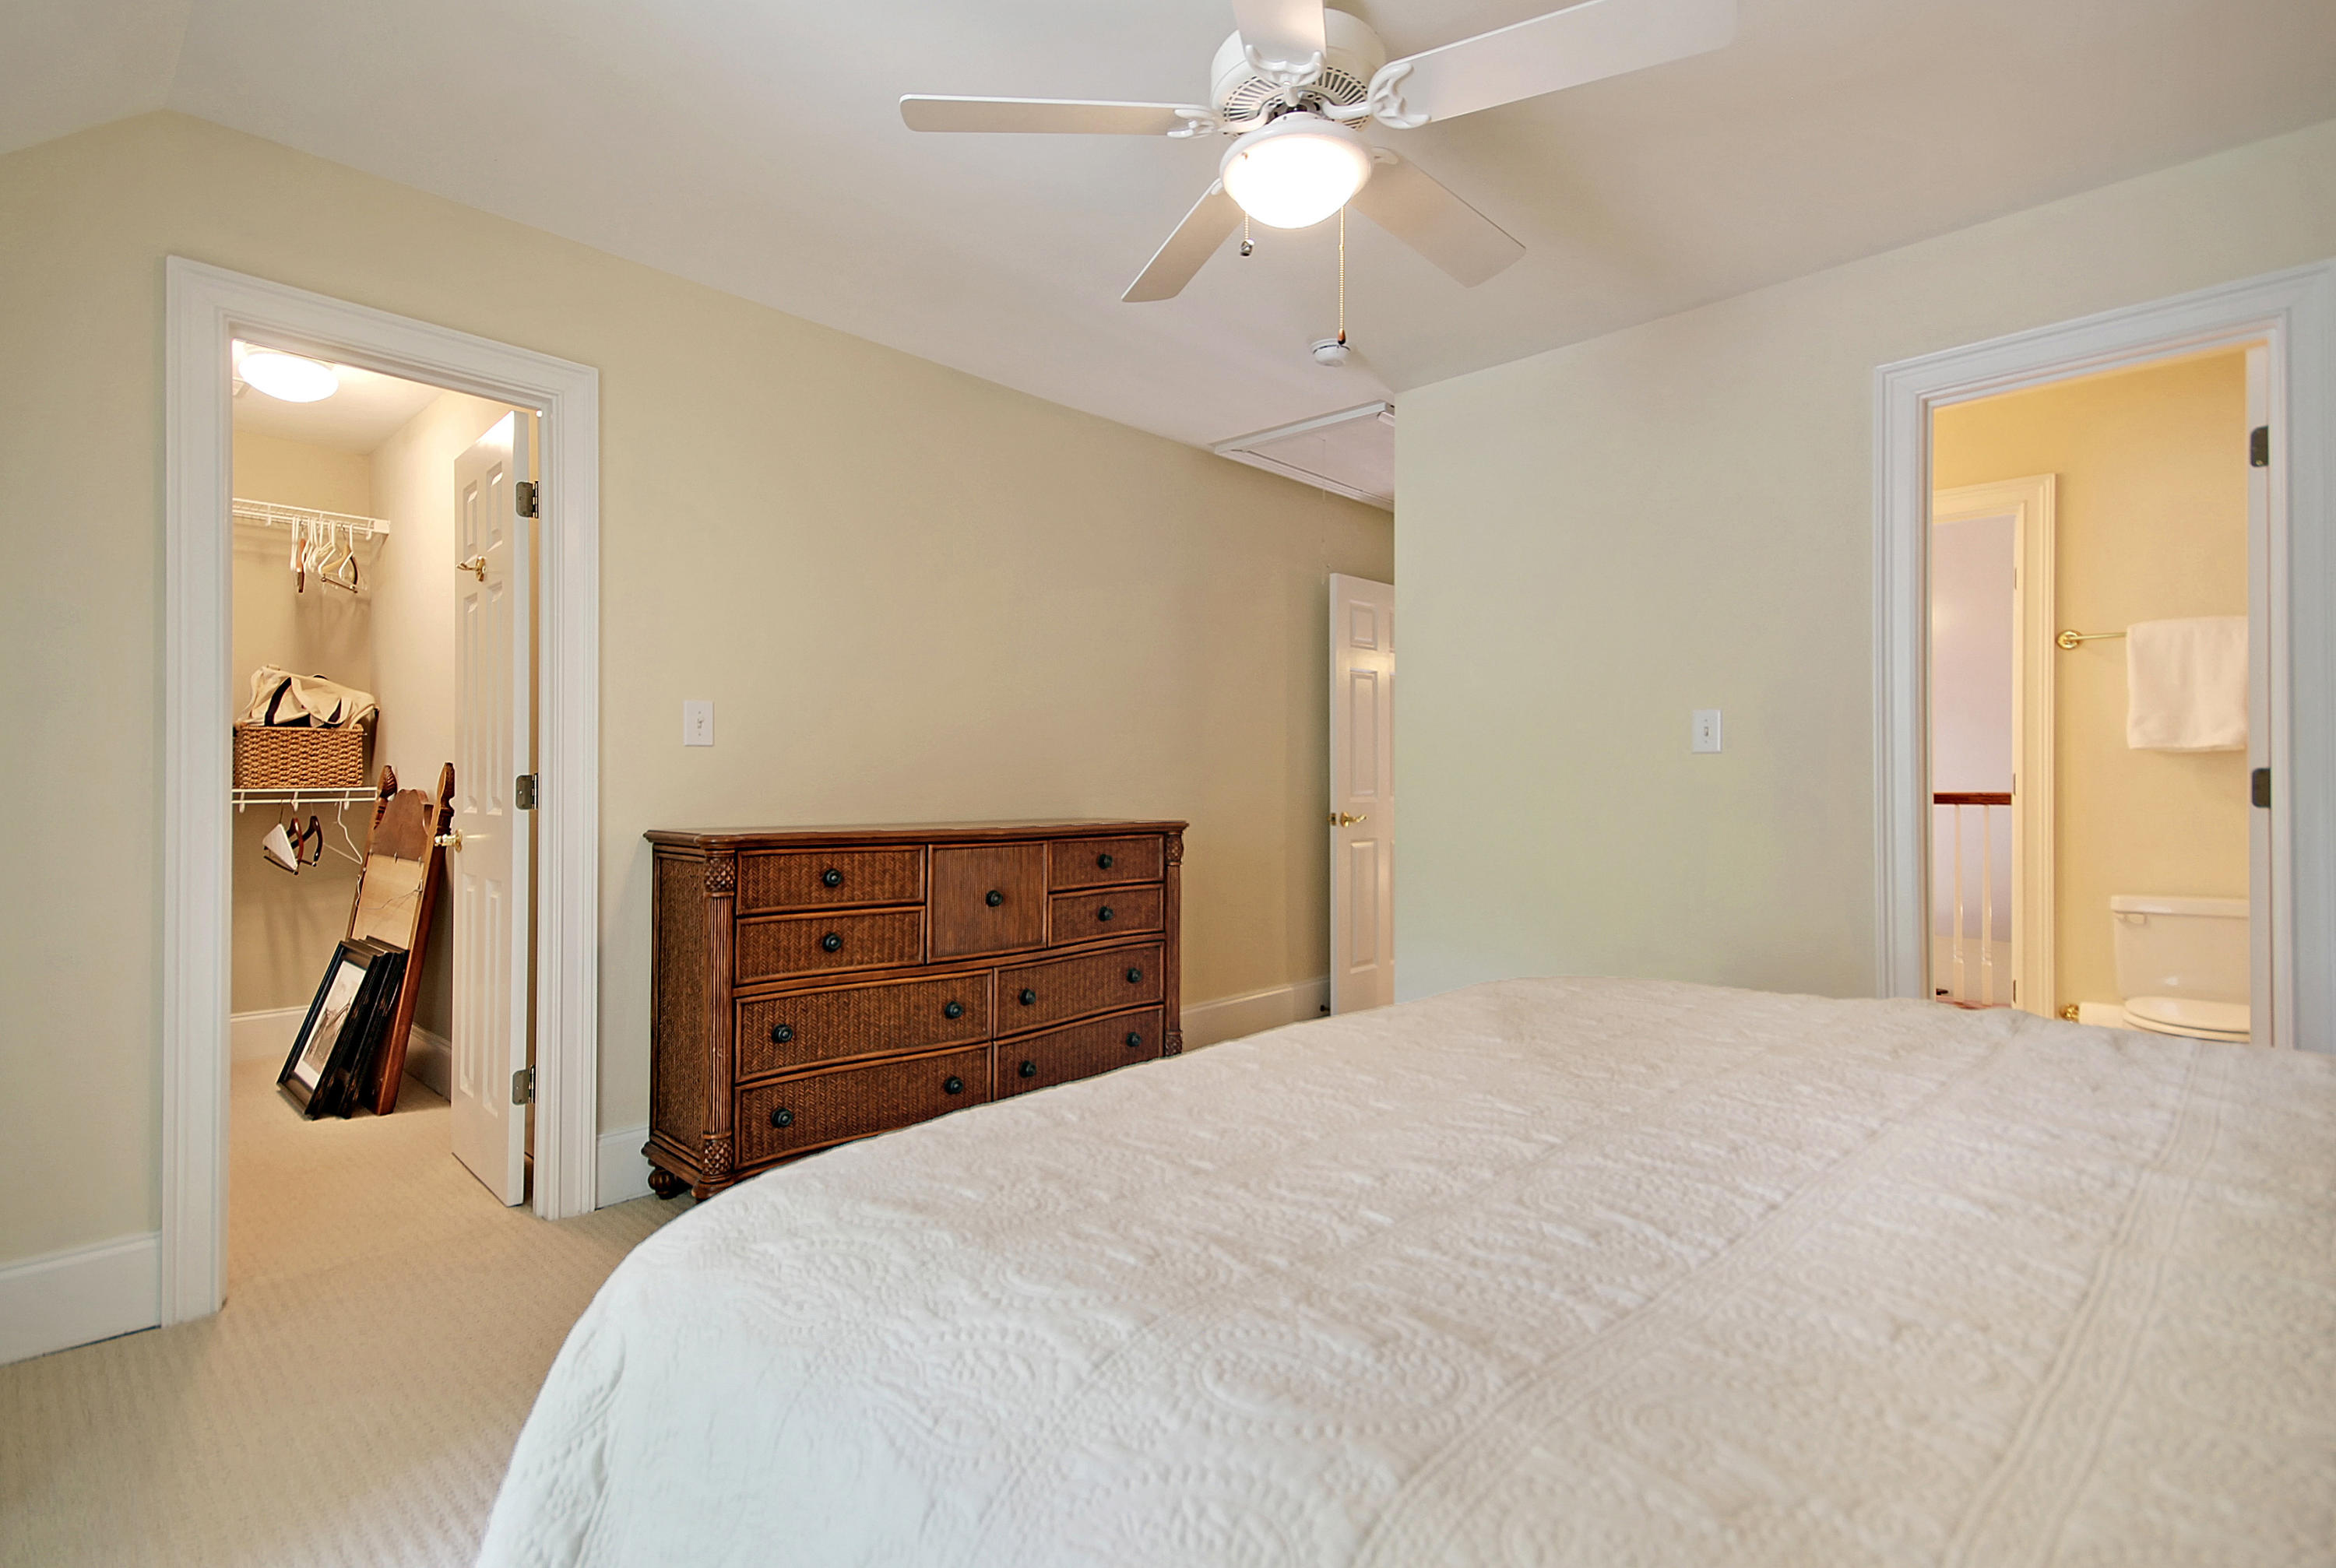 Dunes West Homes For Sale - 1829 Shell Ring, Mount Pleasant, SC - 18